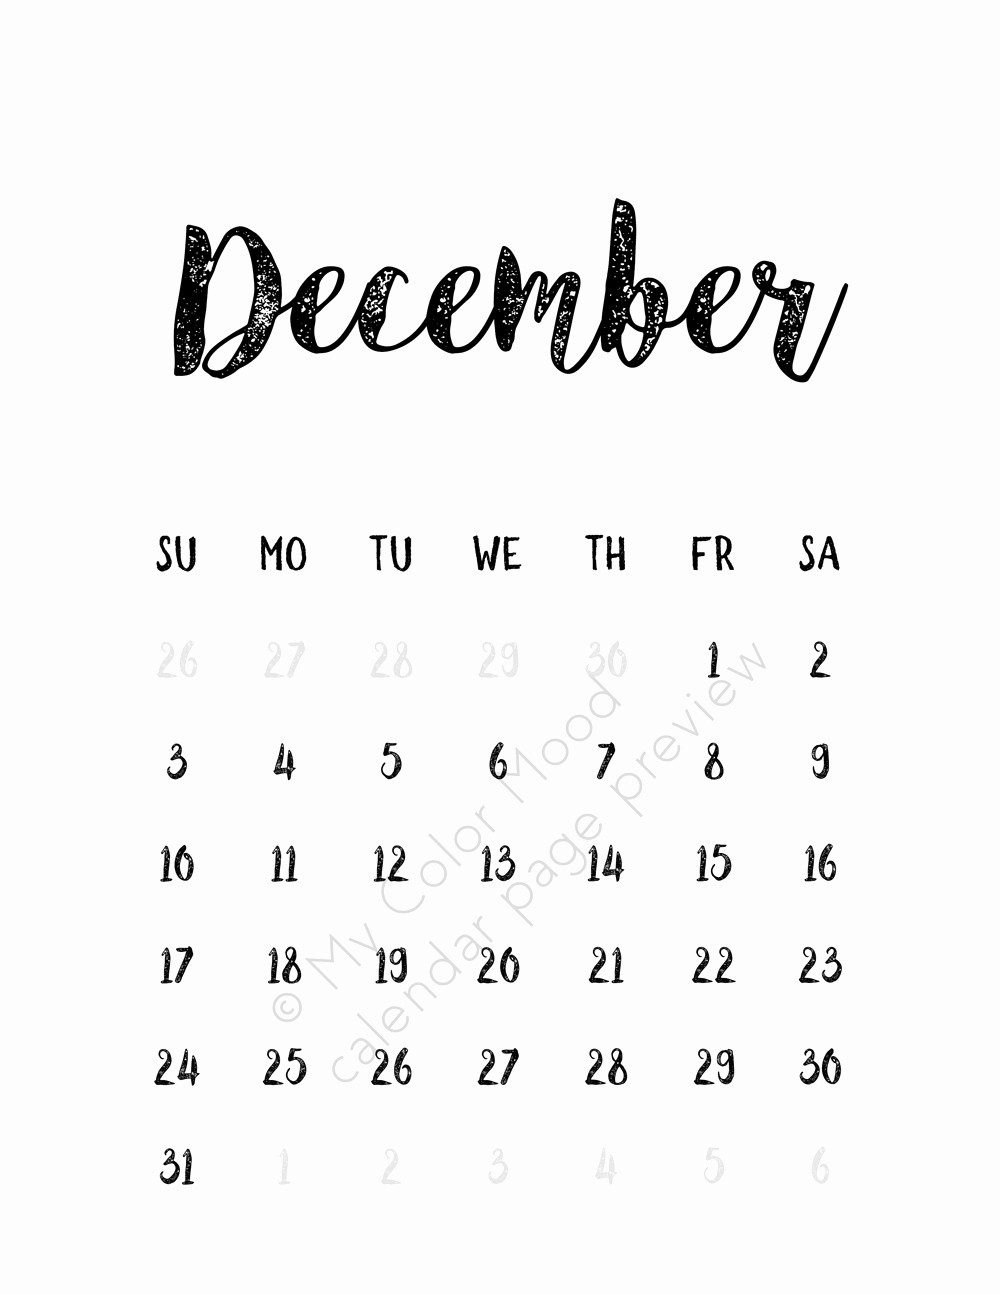 Black and White Calendar Template Best Of December 2017 Calendar Black and White